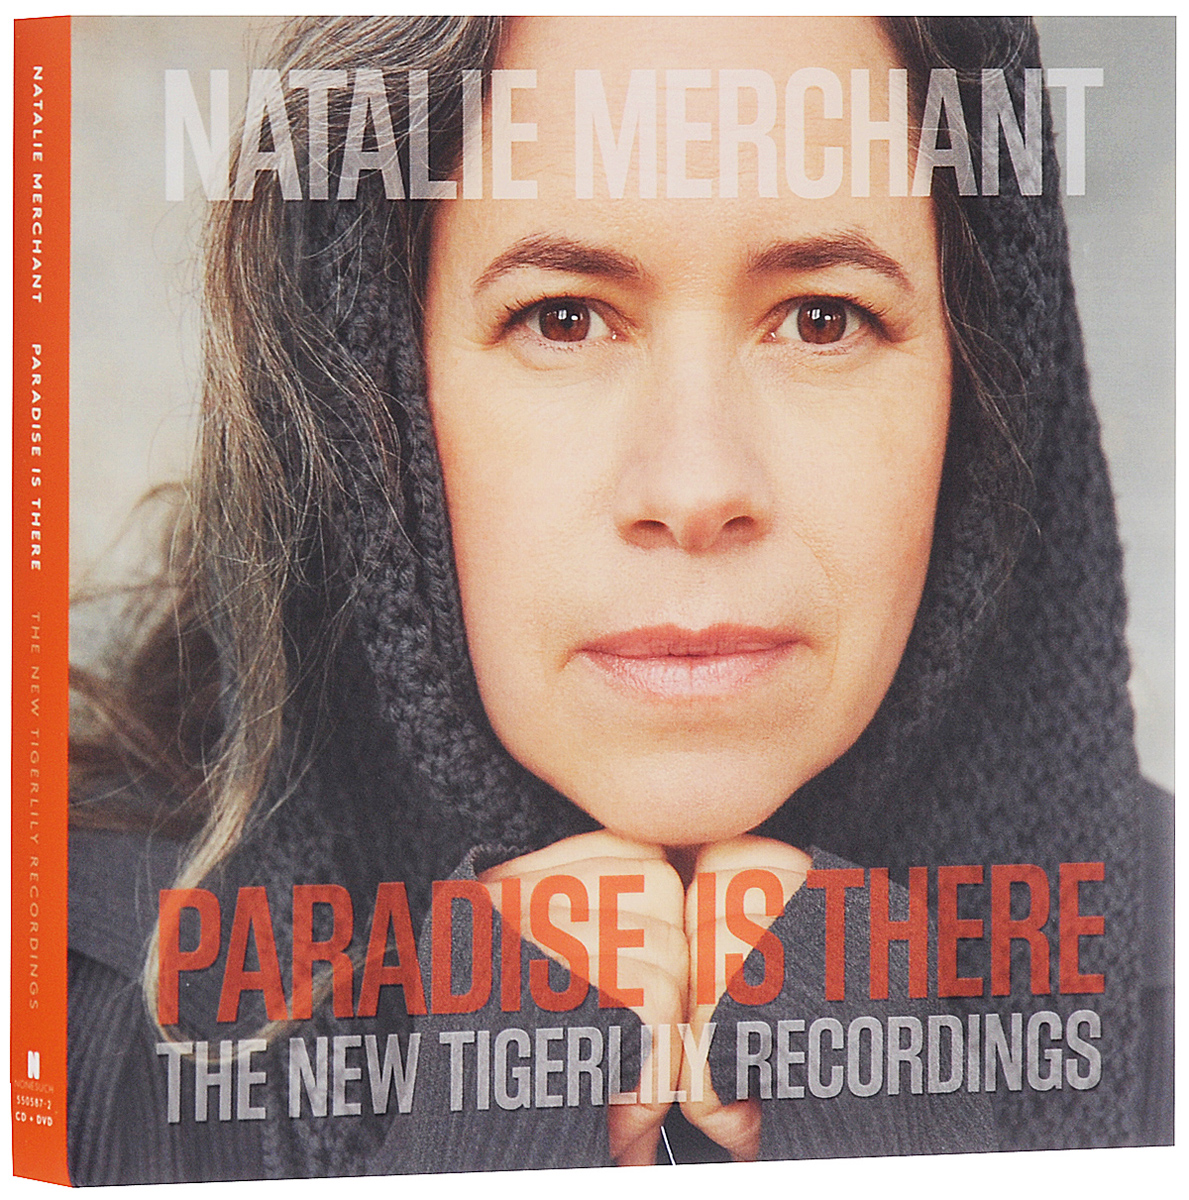 Натали Мерчант Natalie Merchant. Paradise Is There. The New Tigerlily Recordings (CD + DVD) pantera pantera reinventing hell the best of pantera cd dvd